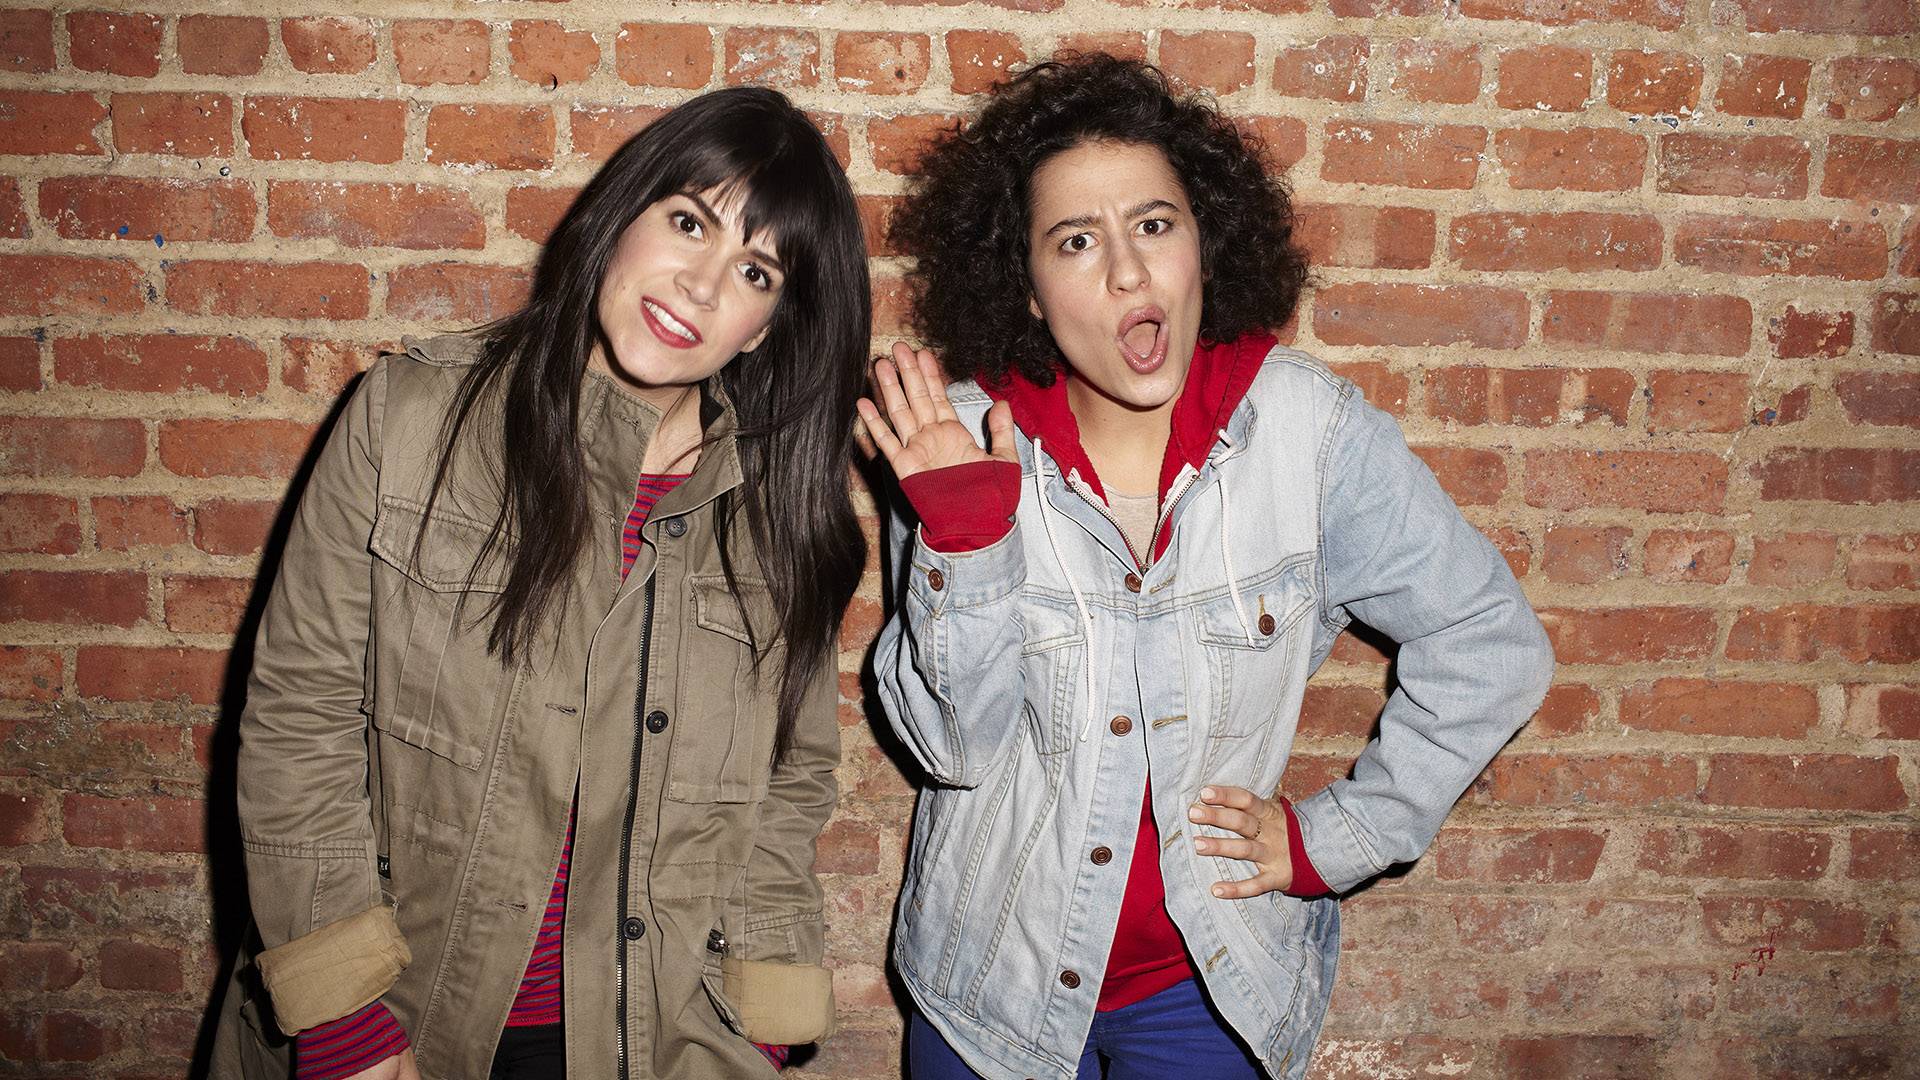 BROAD CITY -- Upright Citizens Brigade alums Abbi Jacobson and Ilana Glazer bring their critically-acclaimed digital series to Comedy Central as a weekly, half-hour scripted series beginning Wednesday, January 22 at 10:30 p.m. ET/PT.Photo by Lane Savage.